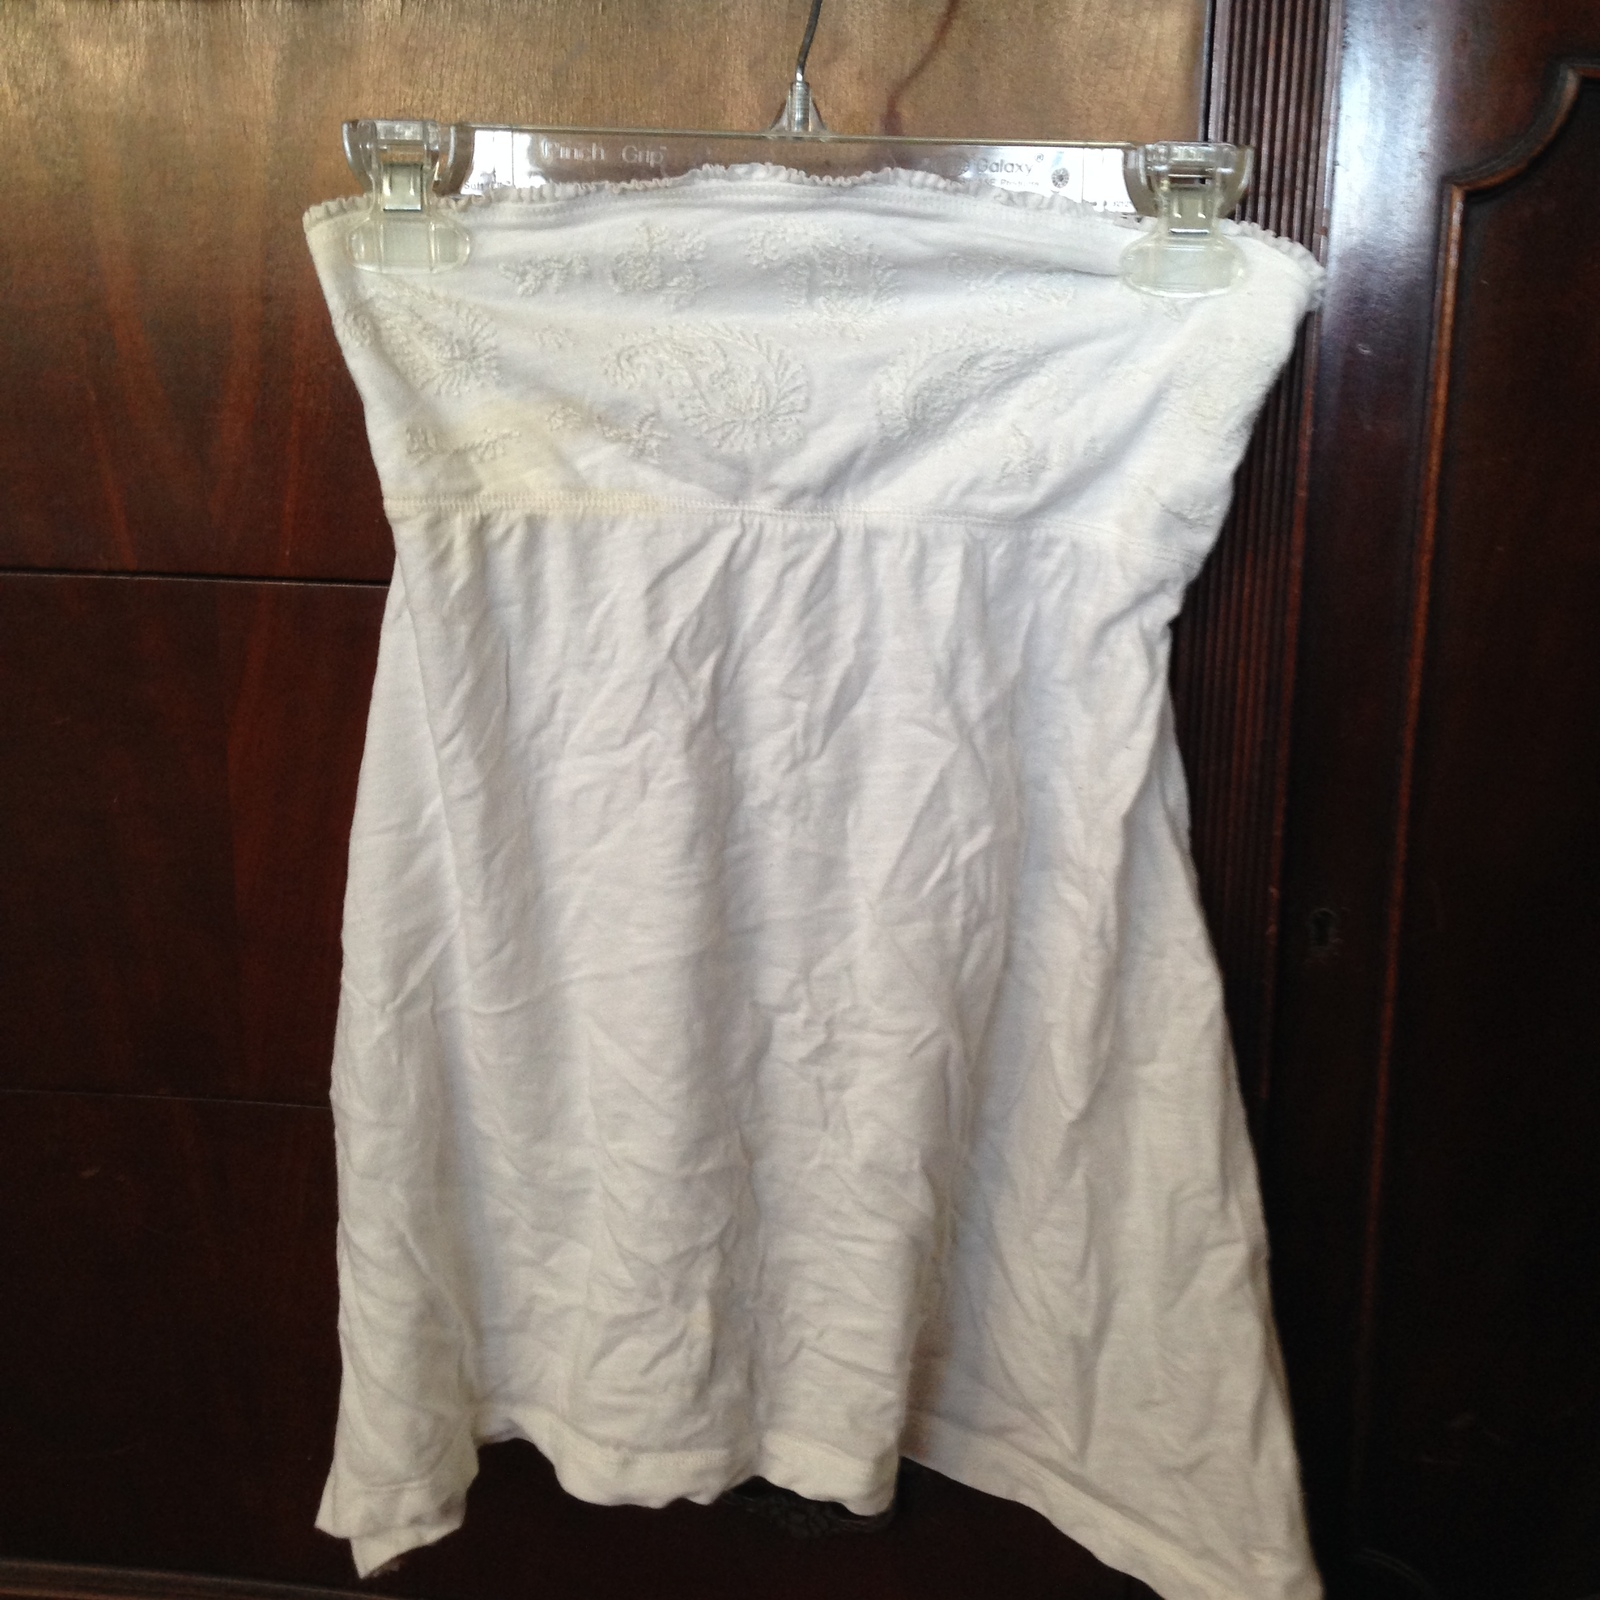 fec7d219 women's beautiful condition American Eagle Outfitters strapless top size  small/p